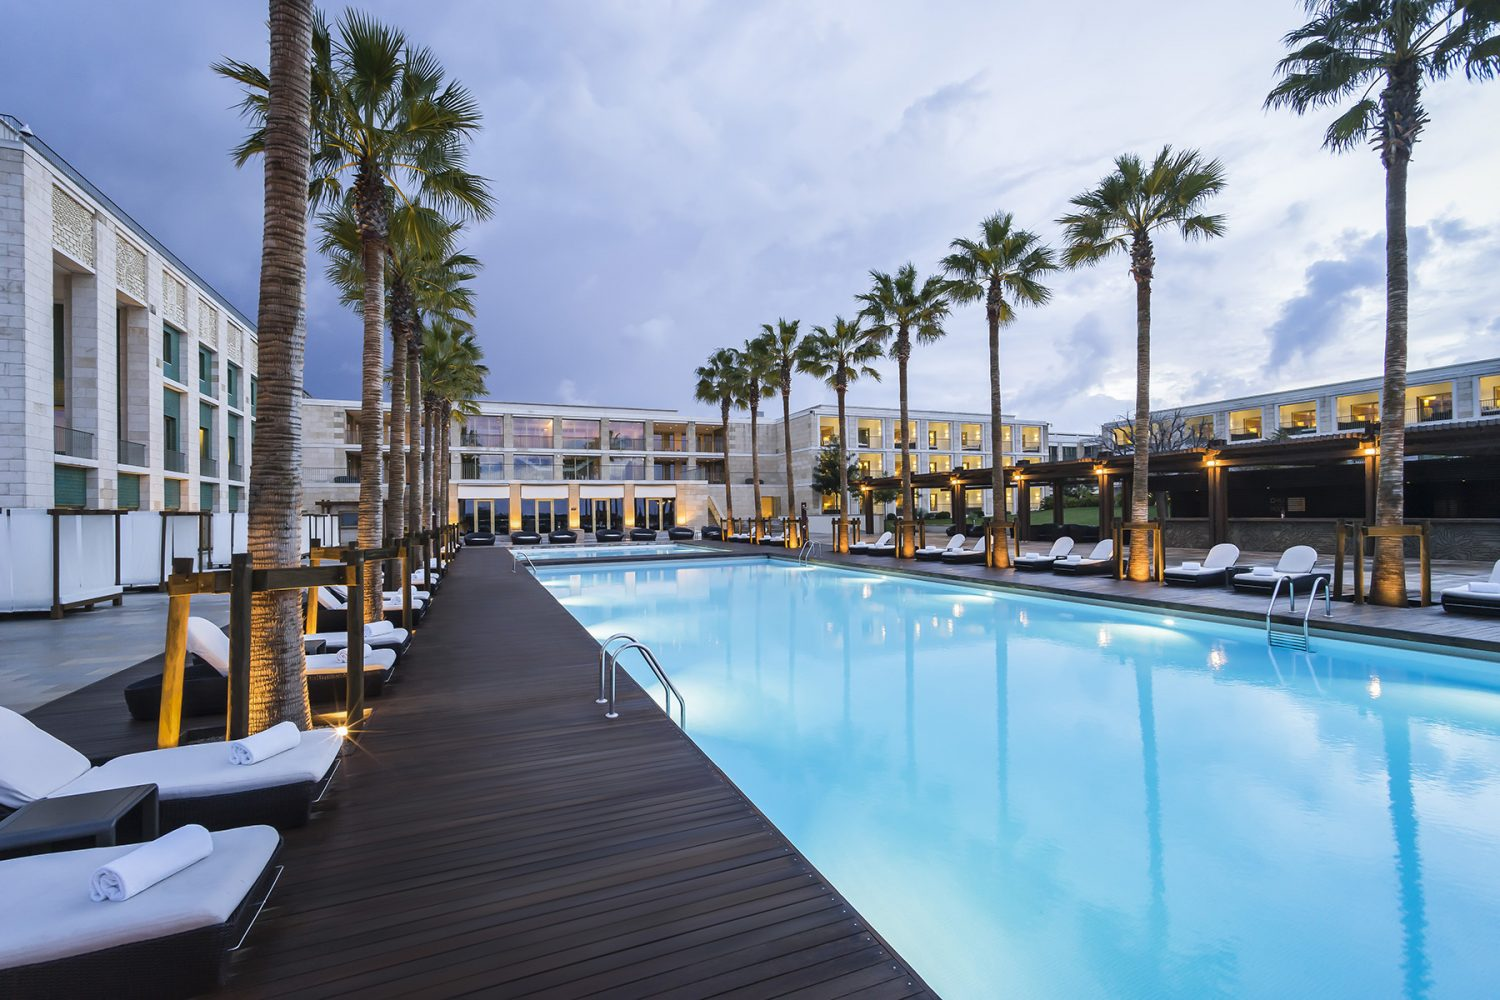 Anantara Vilamoura, A Luxury Hotel in the Algarve. Read our review now.